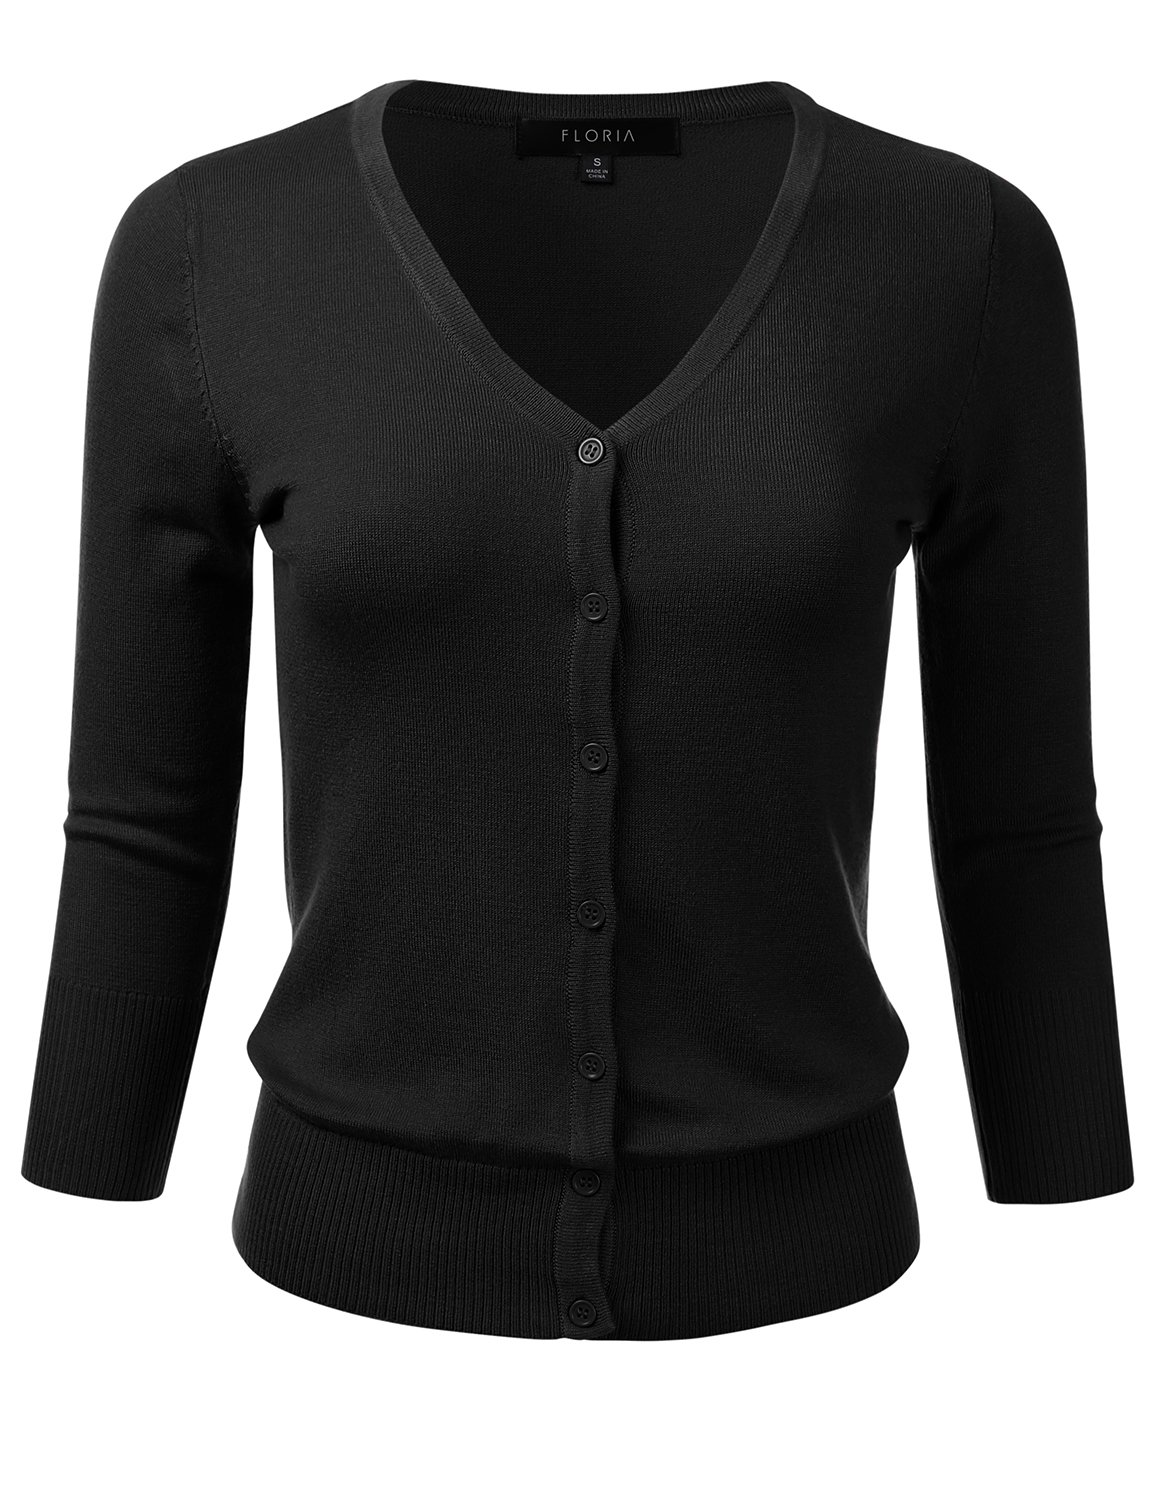 FLORIA Womens Button Down 3/4 Sleeve V-Neck Stretch Knit Cardigan Sweater Black M